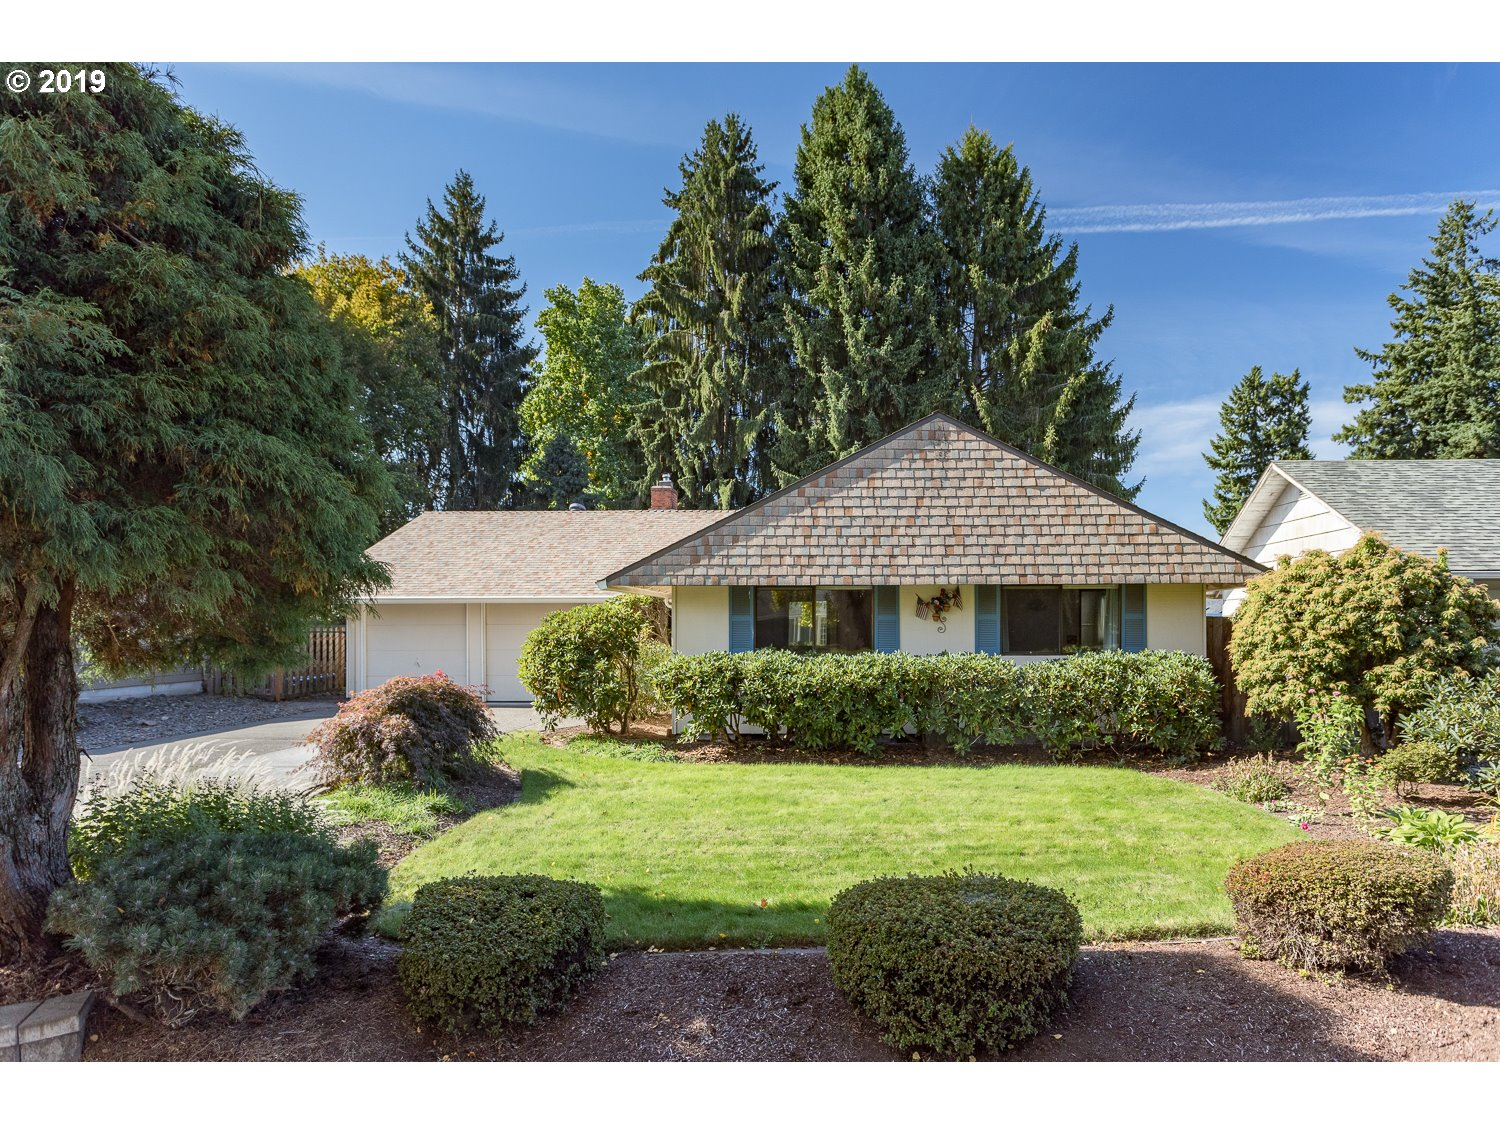 11125 SW 119TH AVE, Tigard OR 97223